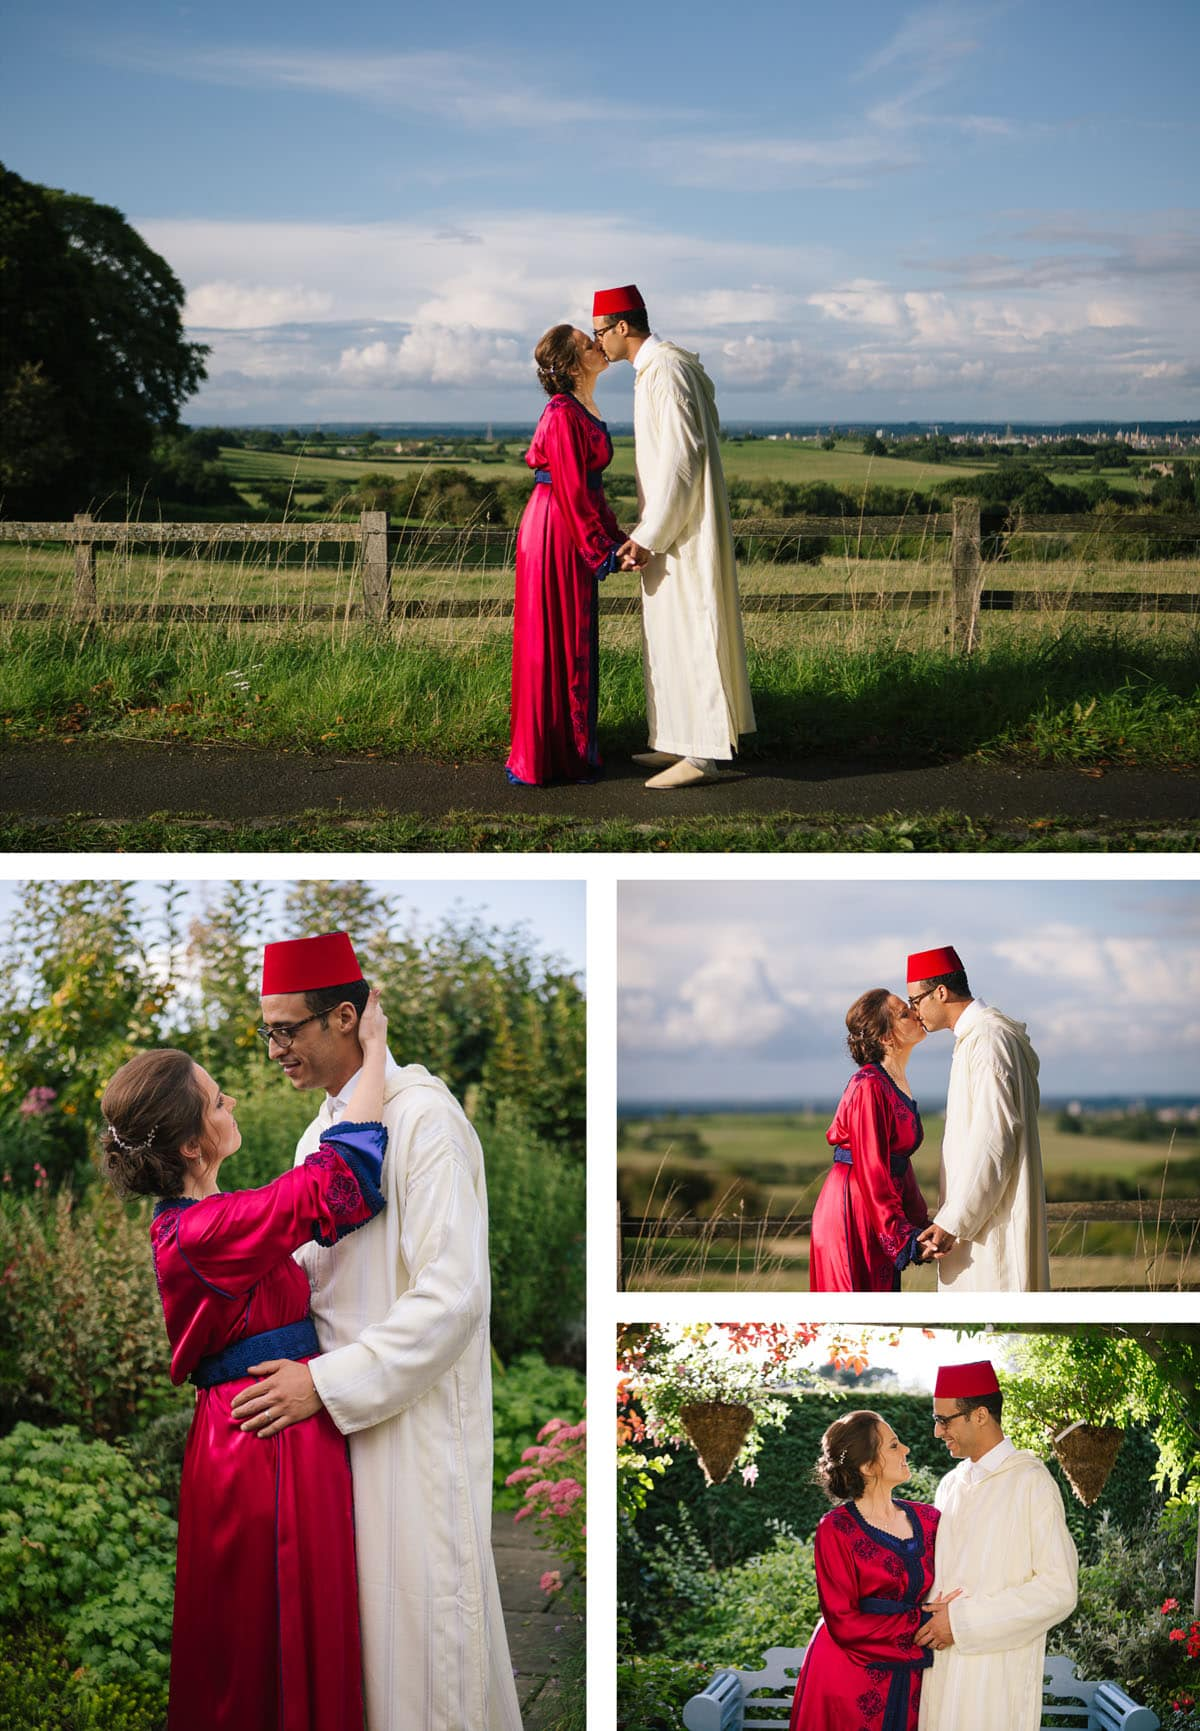 Collage of images of couple's shots. Bride and groom in traditional Moroccan dress - bride wears red silk